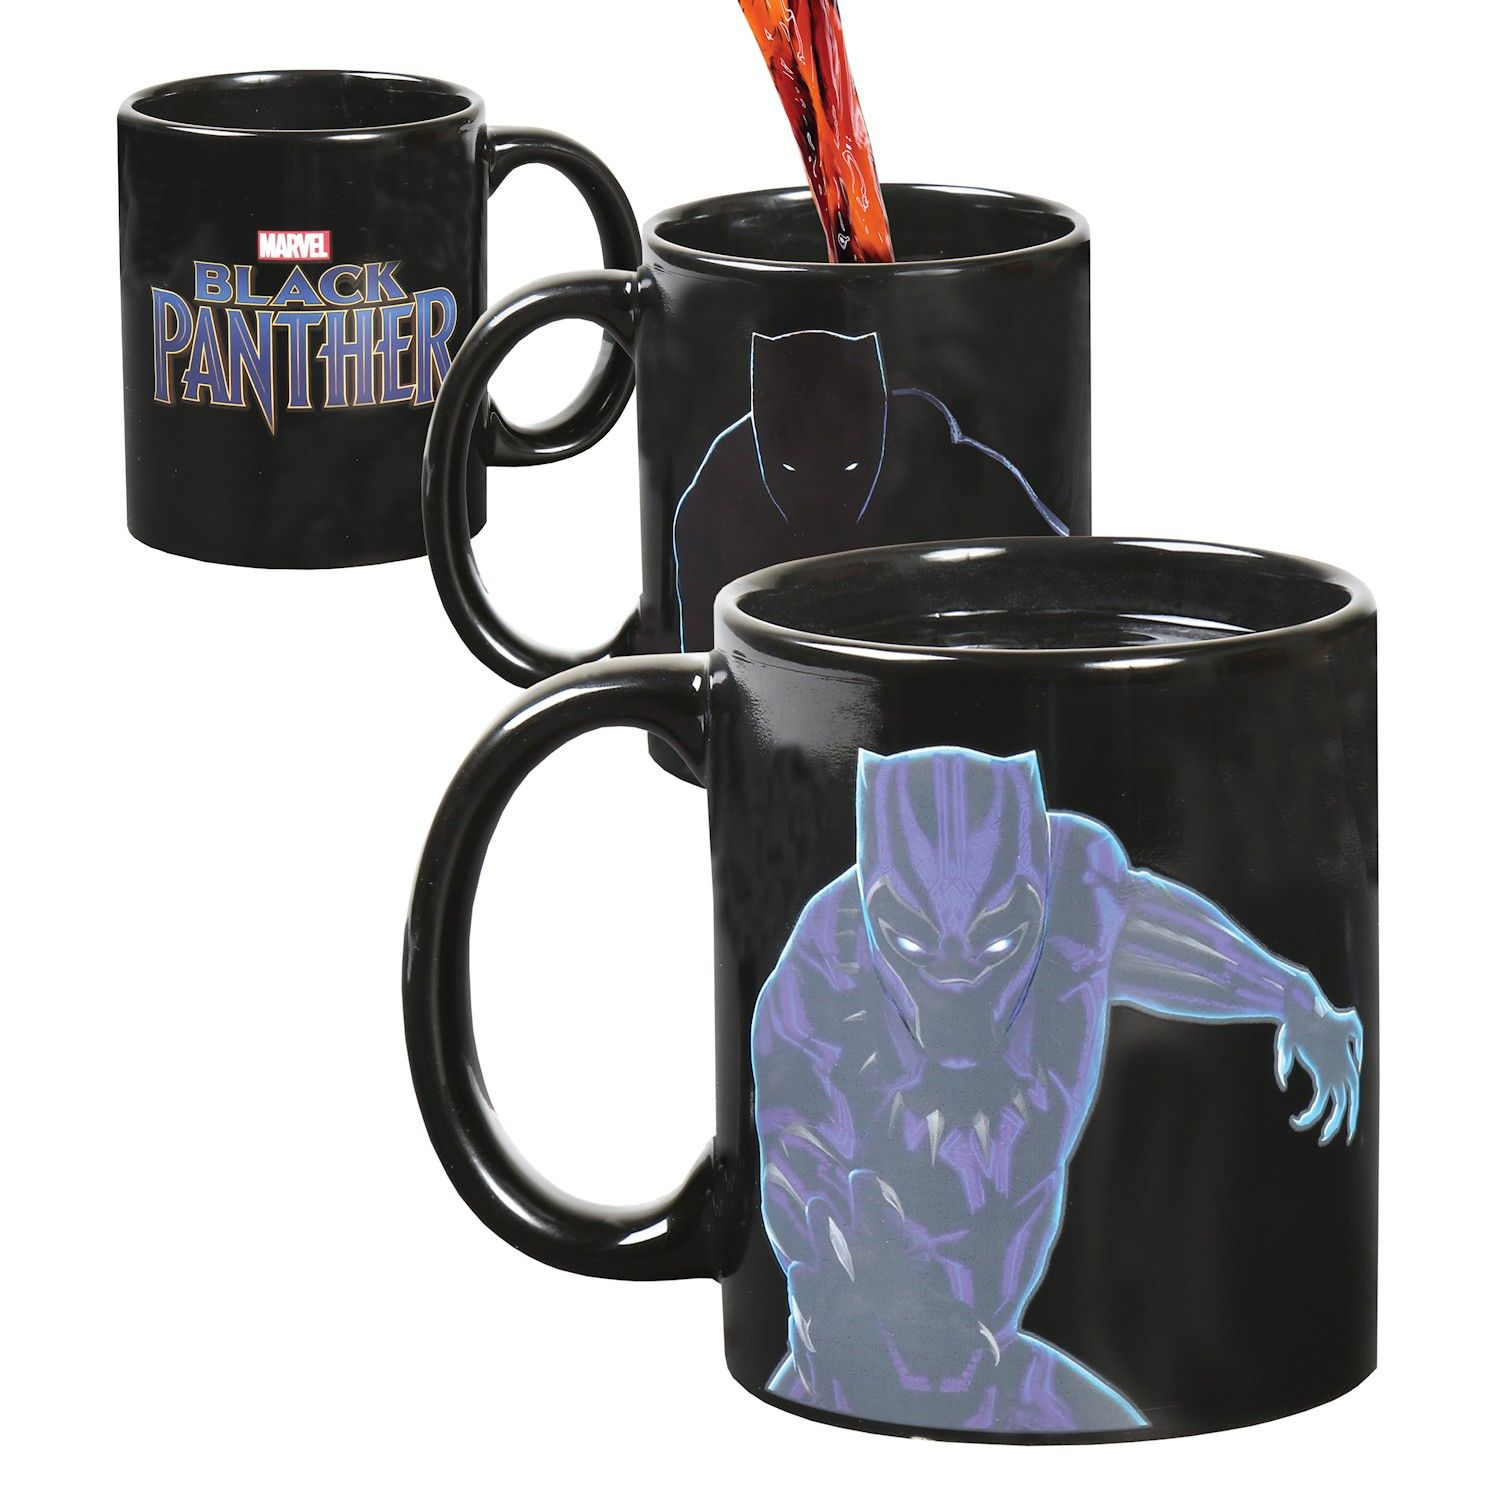 Marvel Black Panther Magic Color Changing With Heat Coffee